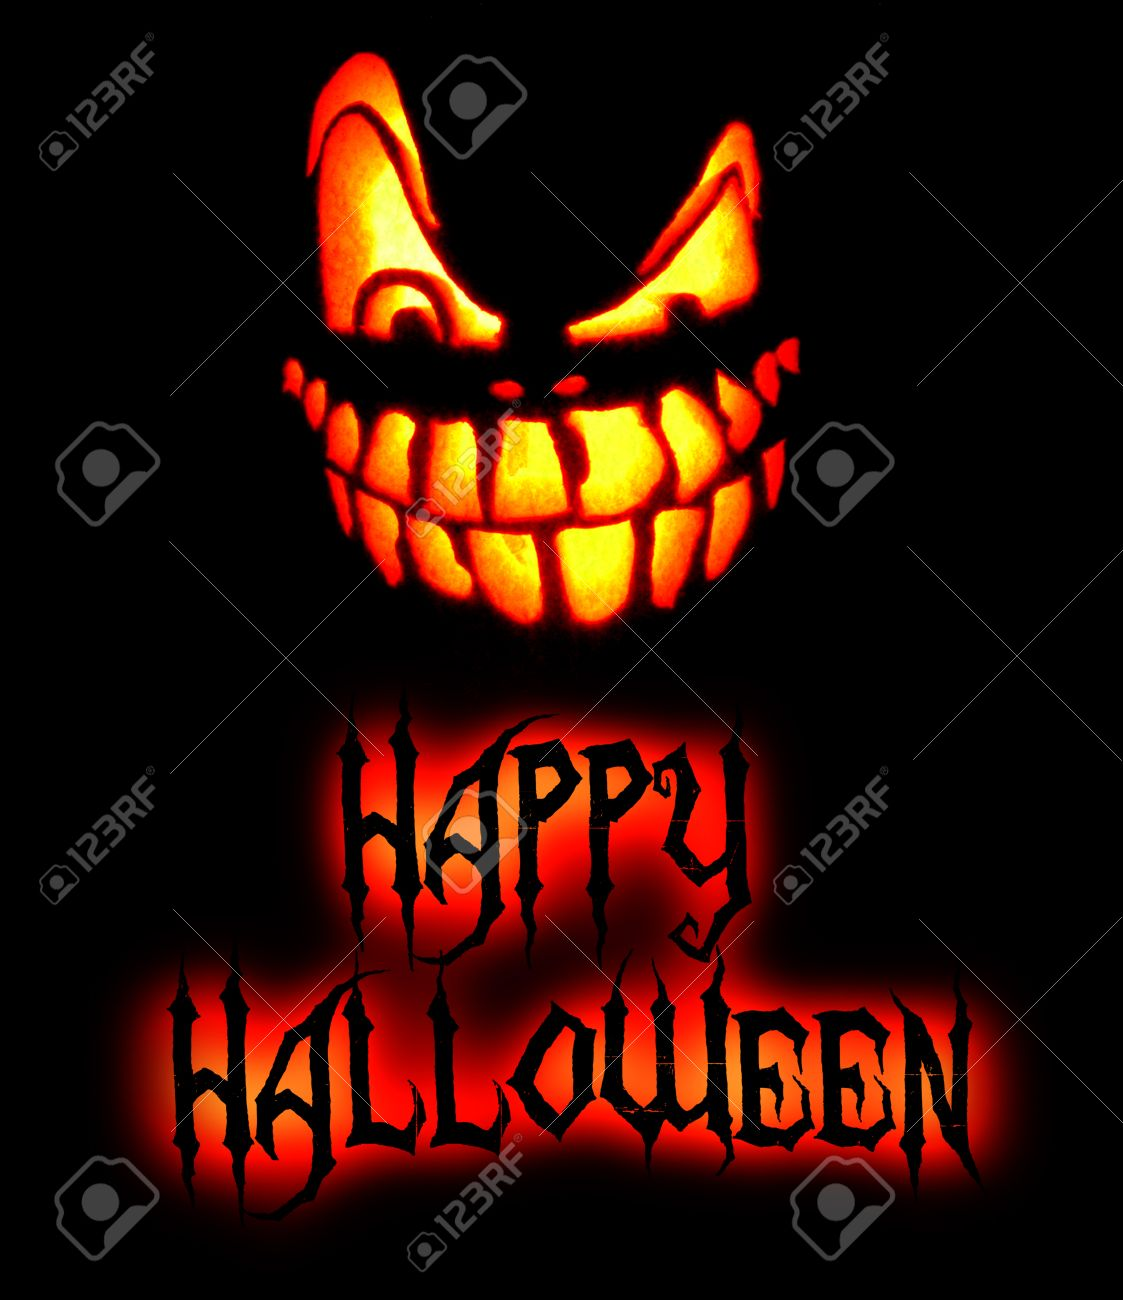 Happy Halloween Card With Scary Pumpkin Face And Black Lettering Stock Photo Picture And Royalty Free Image Image 87950101